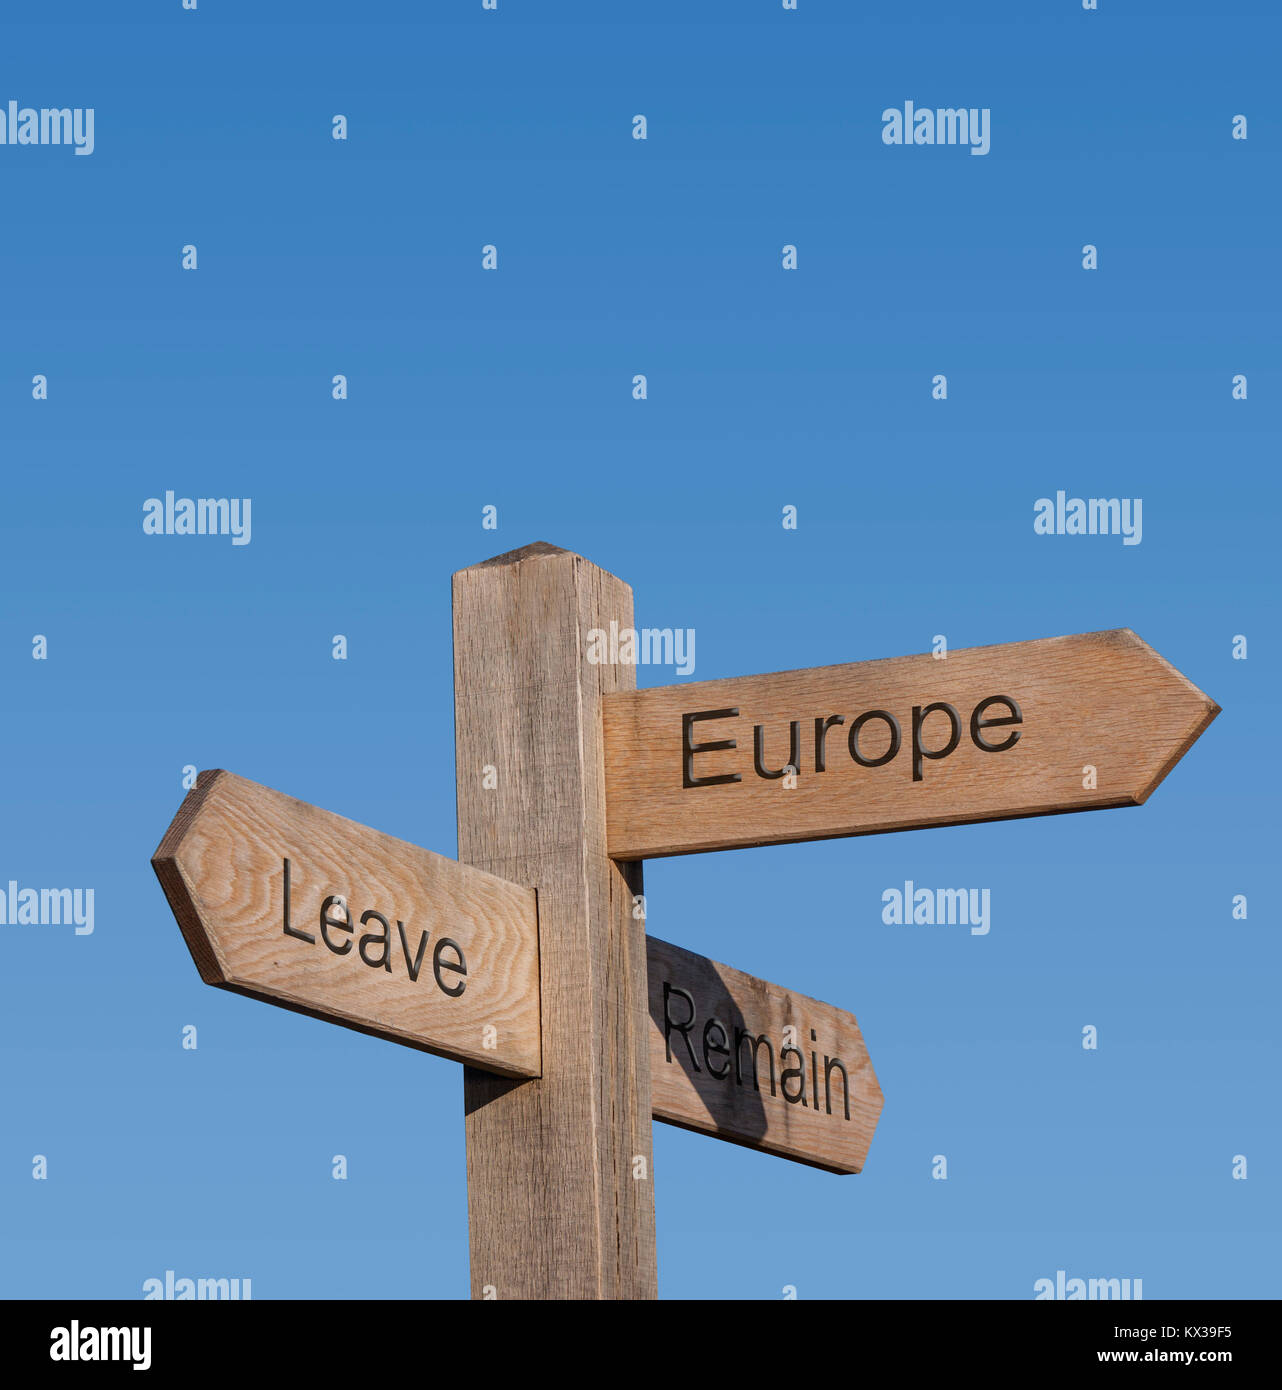 Signpost directions showing leave, remain, europe, brexit vote. - Stock Image